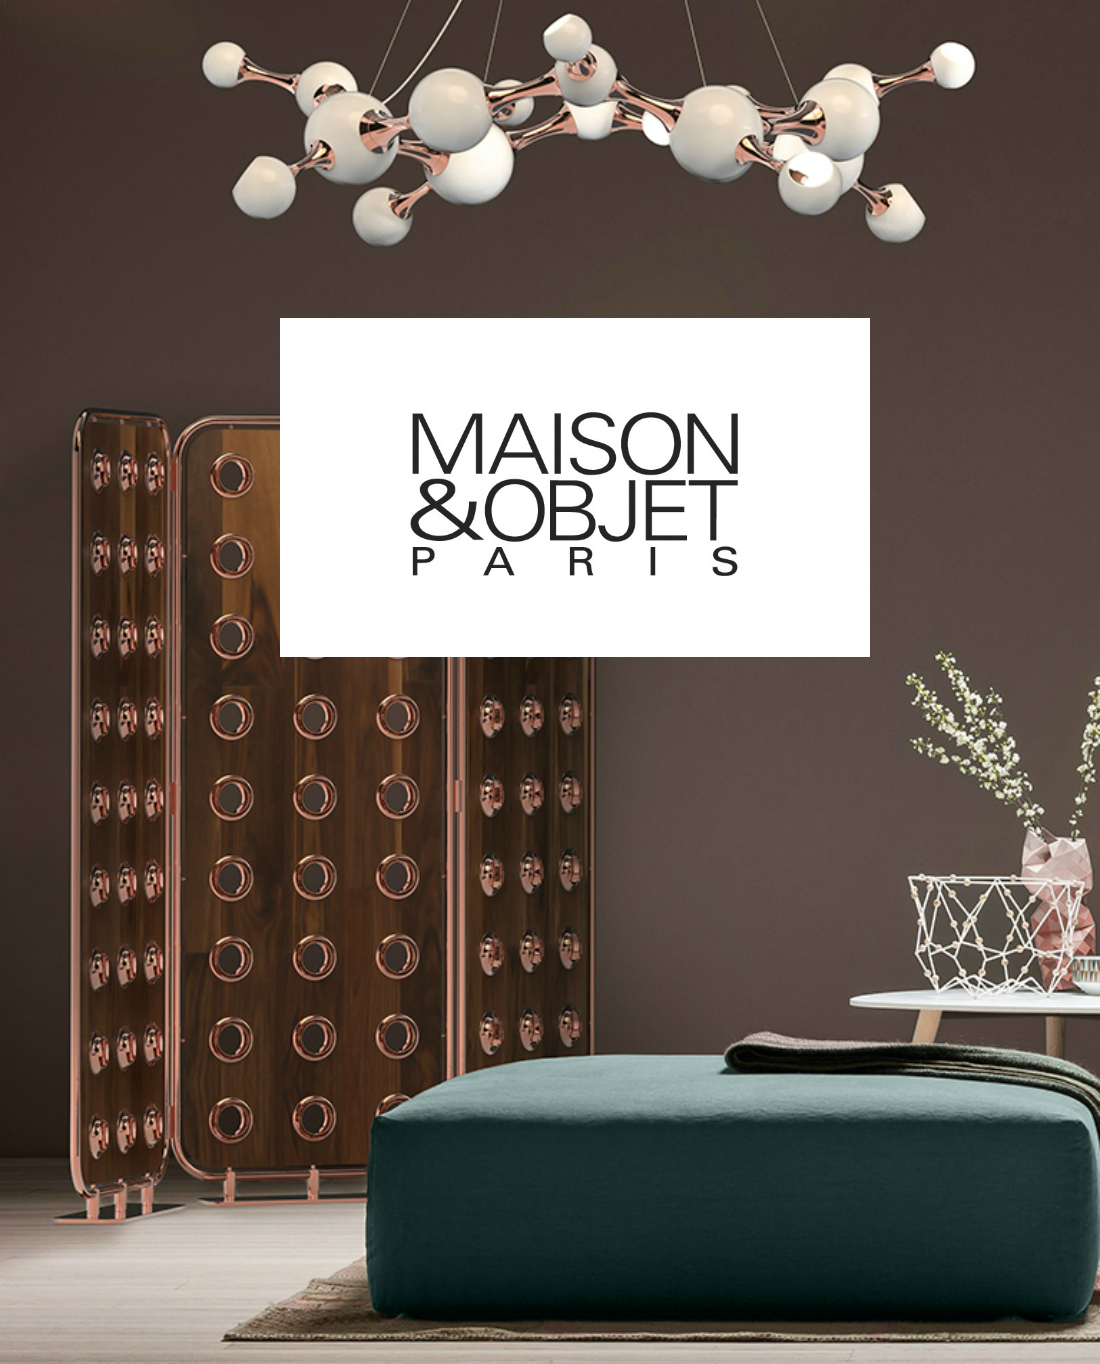 TRENDS FROM MAISON ET OBJET TO BE FOLLOWED IN 2017 trends TRENDS FROM MAISON ET OBJET TO BE FOLLOWED IN 2017 cover 6